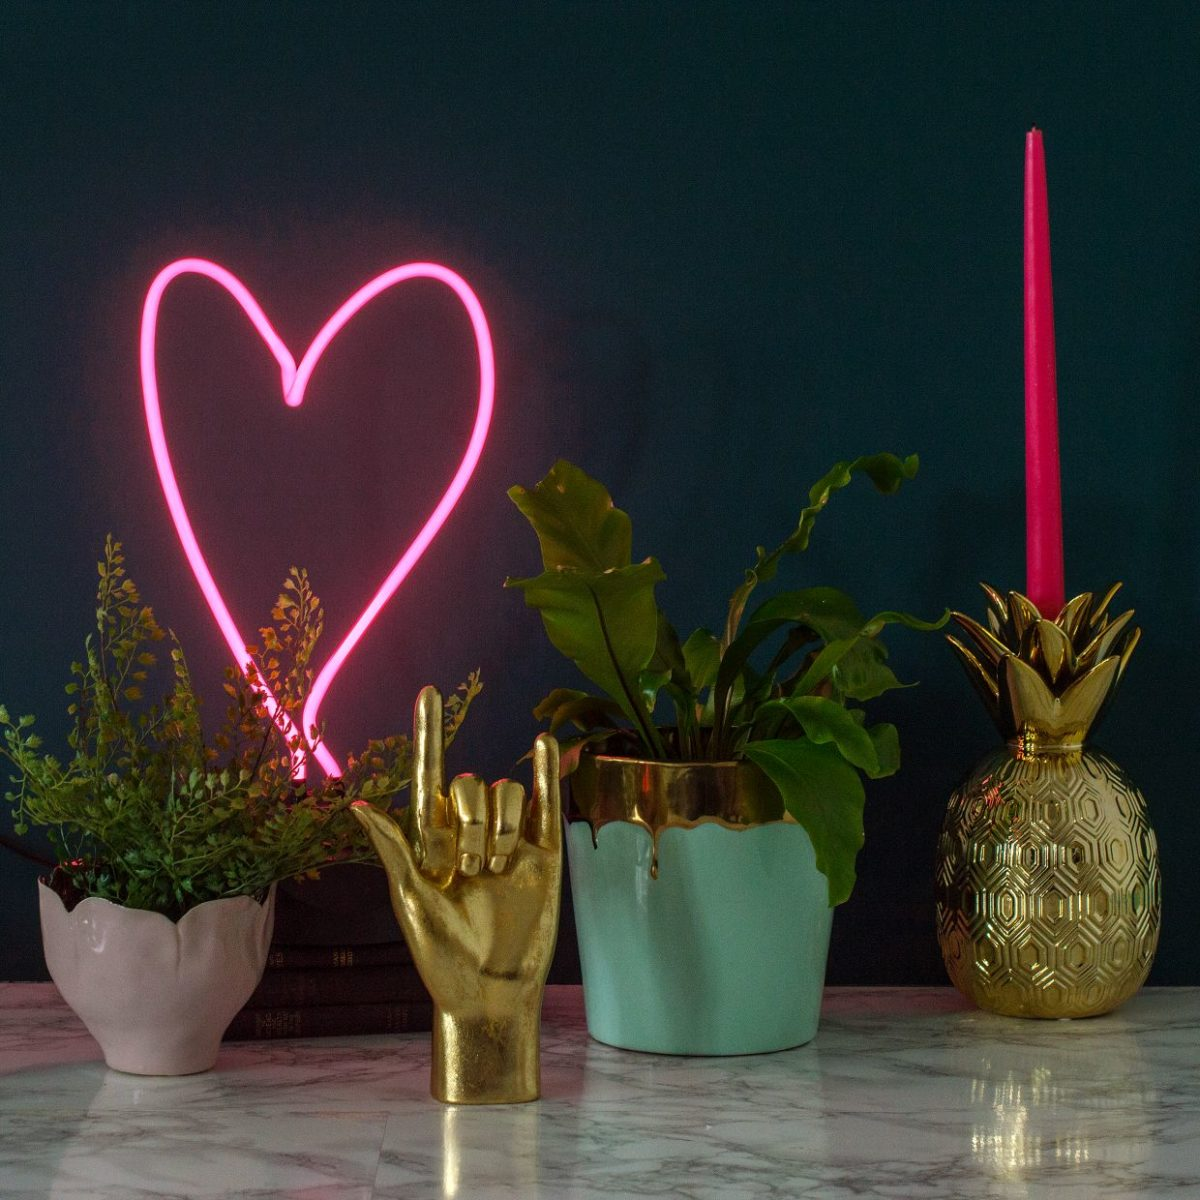 4audenza_pink-neon-heart-light-with-stand-al58.-gold-039rock-on039-hand-al16.95.-luxe-drip-plant-pot-al30.95-1200x1200.jpg